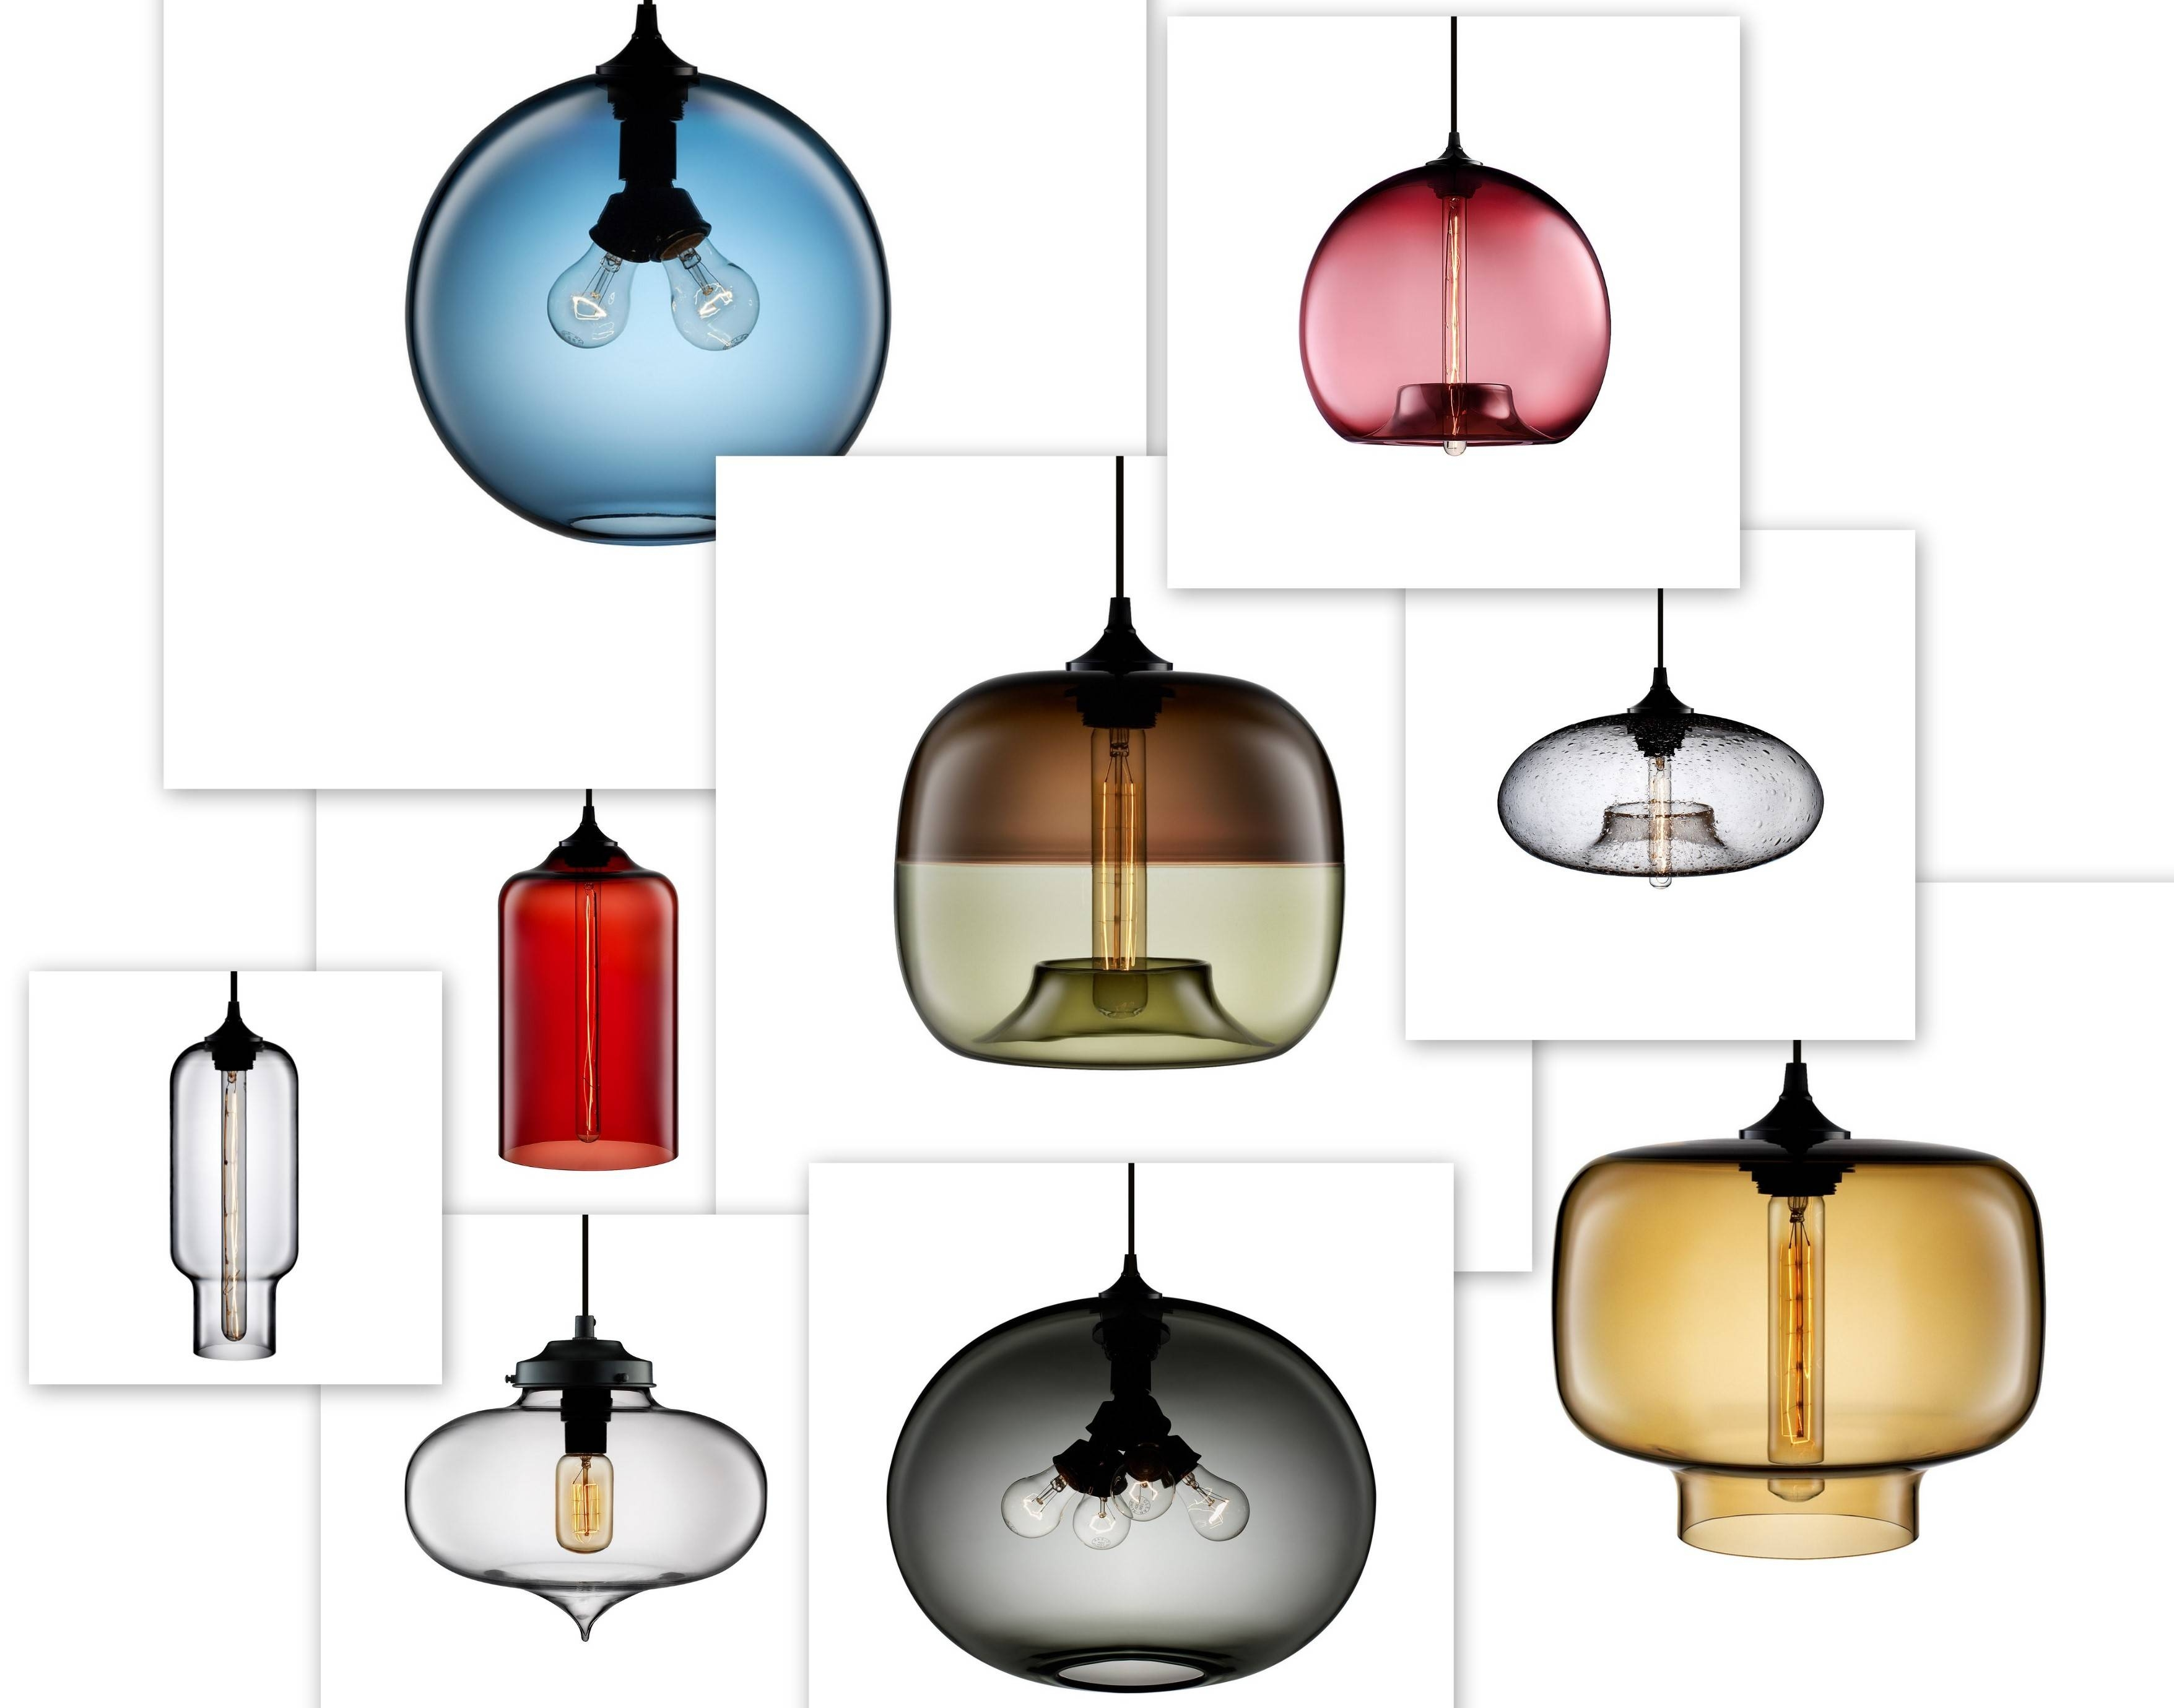 Blown Glass Pendant Light - Baby-Exit in Blown Glass Pendant Lights Fixtures (Image 1 of 15)